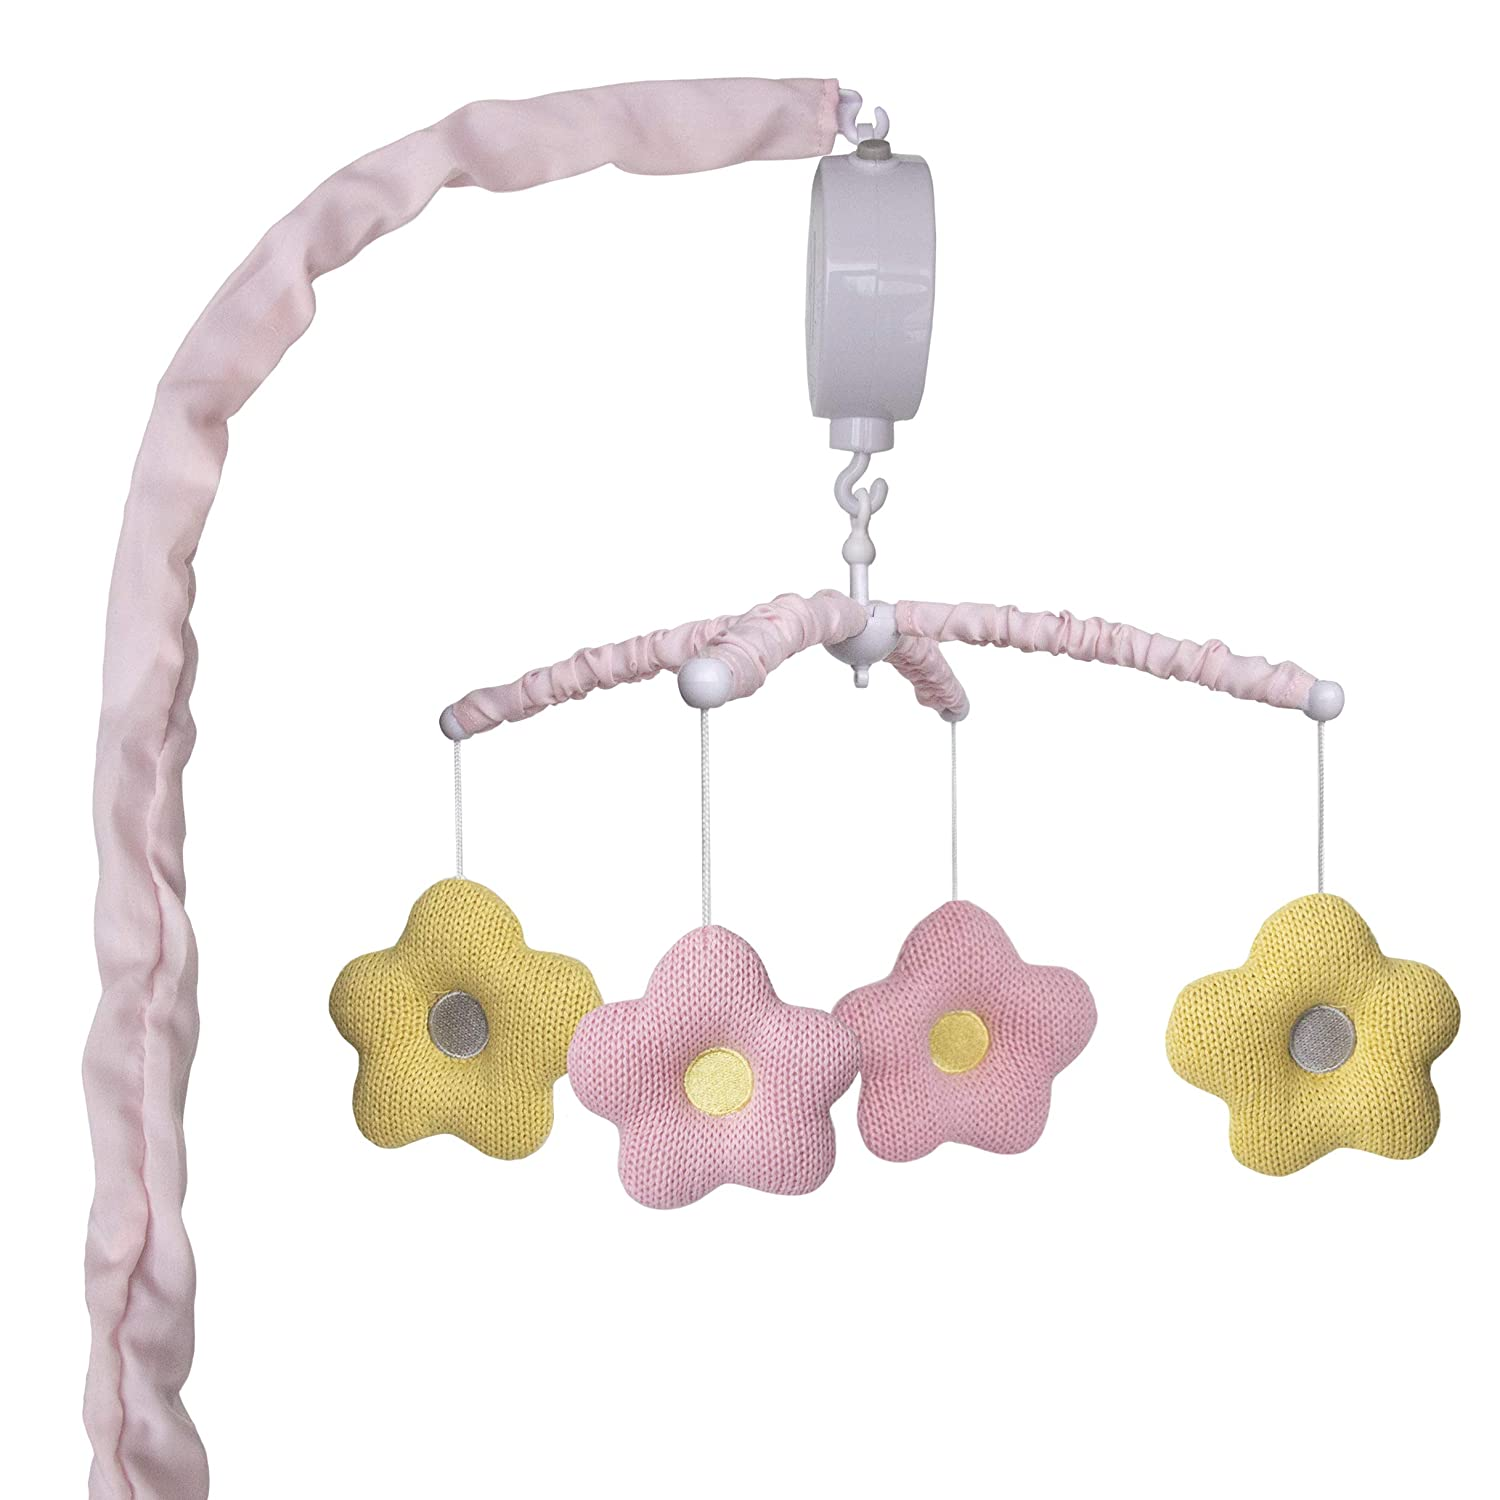 Lolli by Lolli Living Baby Musical Mobile - Primrose   Crib Toy, Knitted Hanging Toys, Nursery Decor, Calming Soother with 12 Lullabies   Baby Essential and Perfect Baby Toy for Boys and Girls